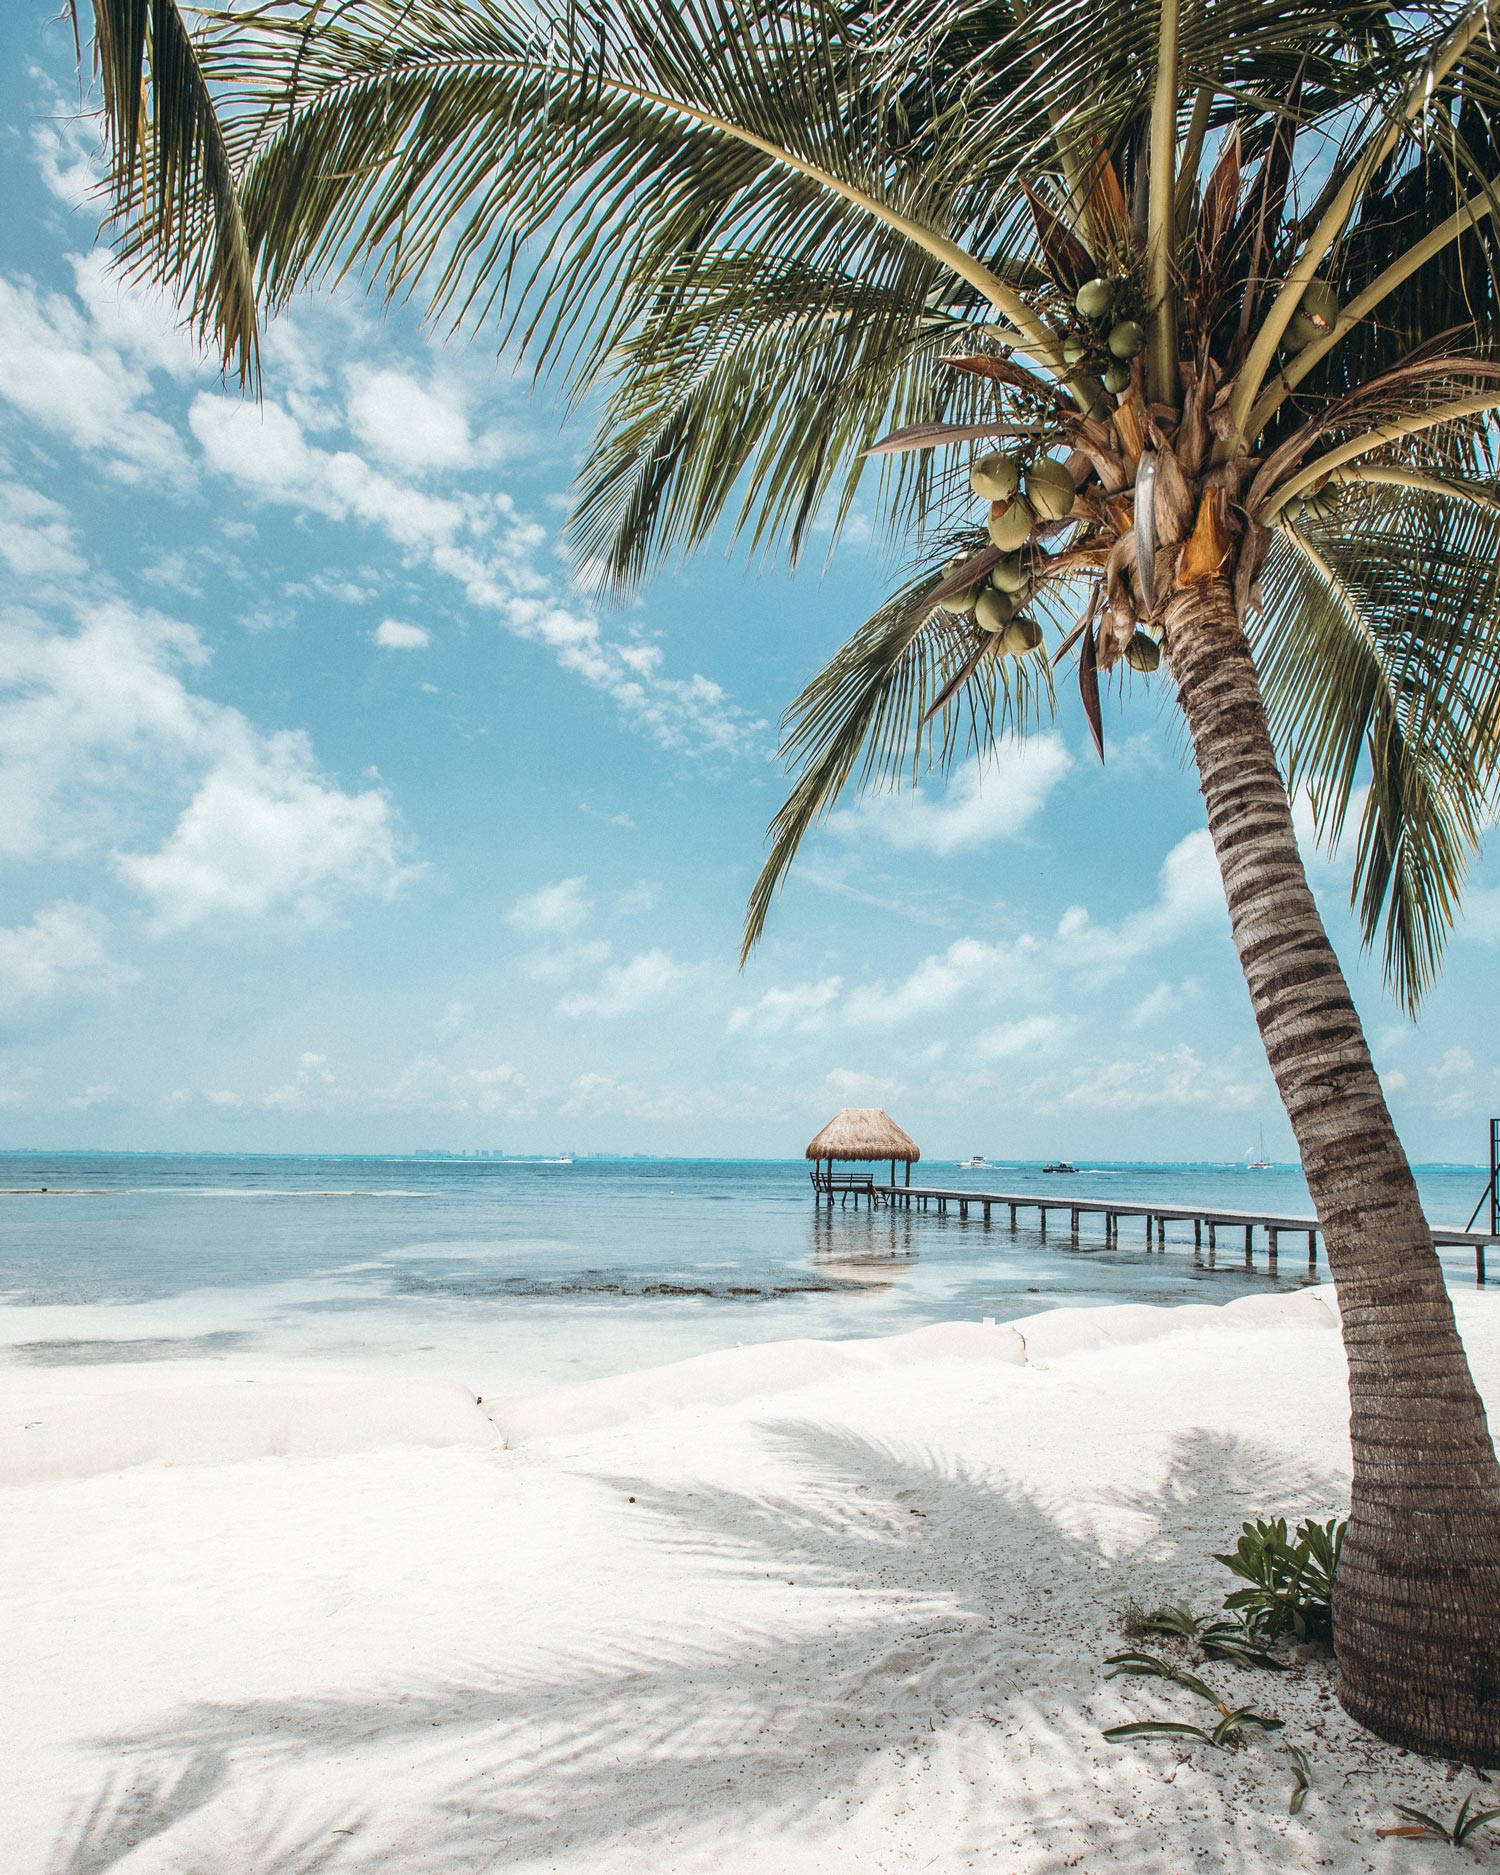 Tropical Beaches: A Weekend In Isla Mujeres • Stay Close Travel Far